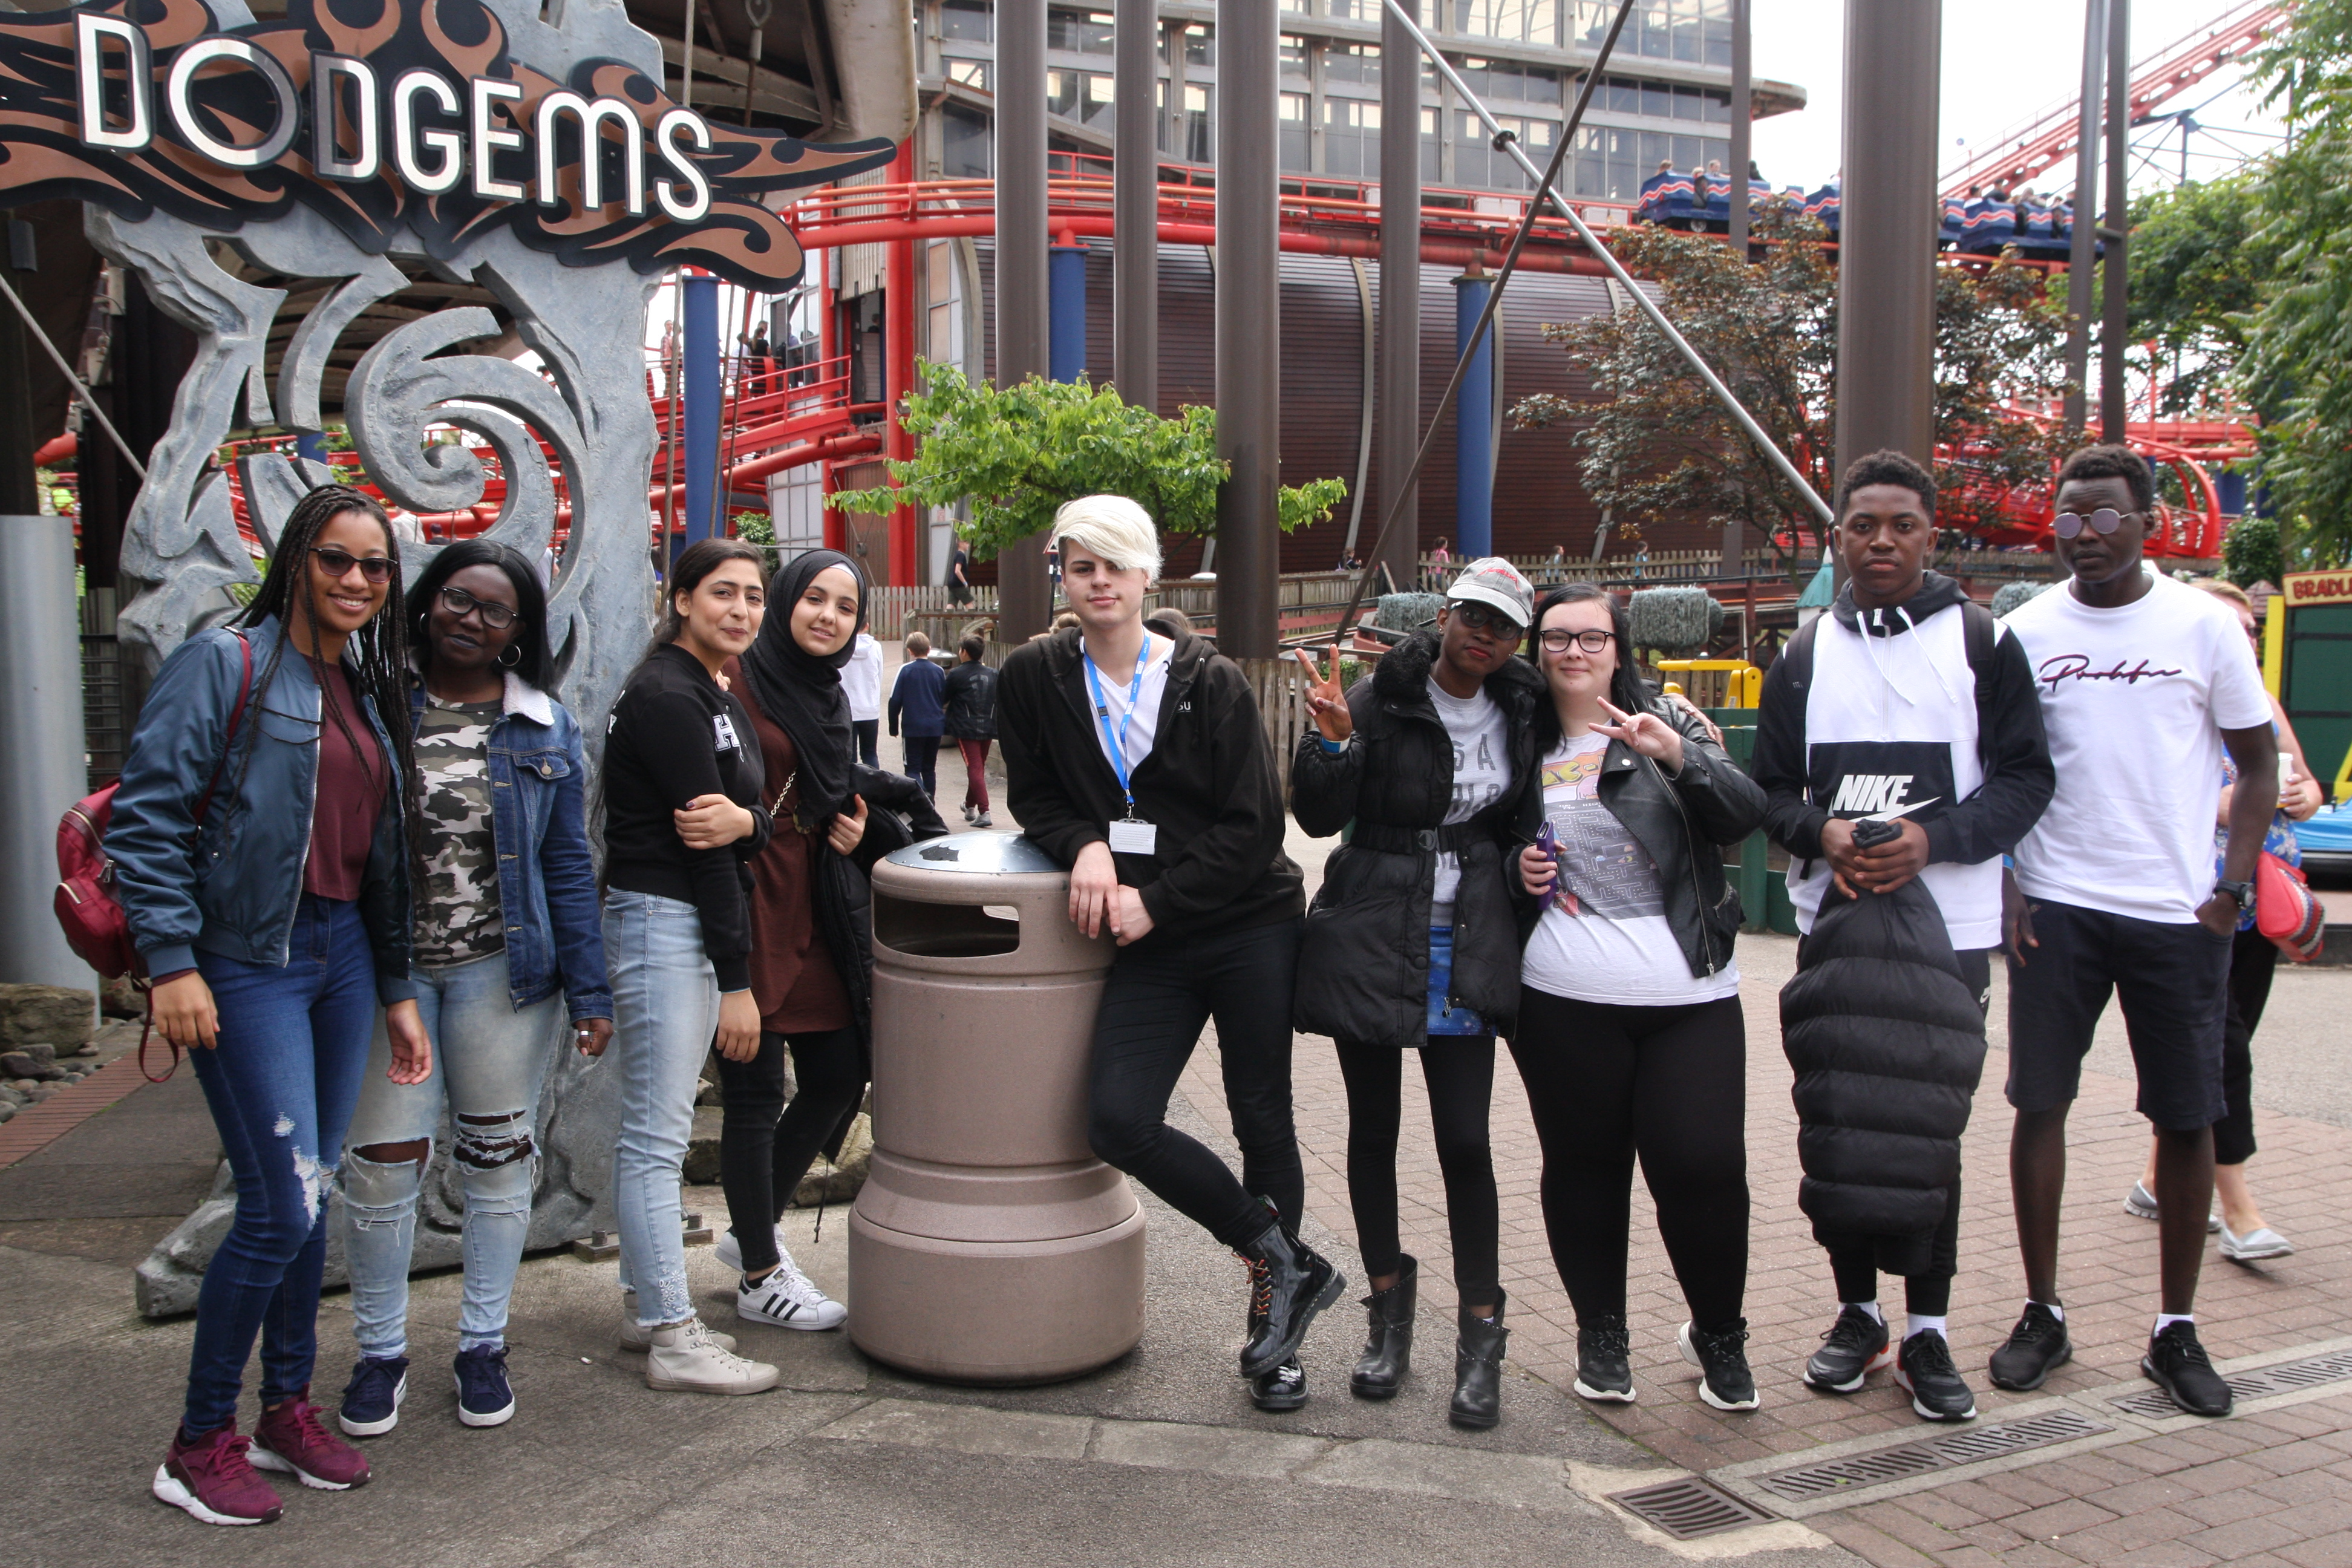 Students in a group on a trip to Blackpool Pleasure Beach